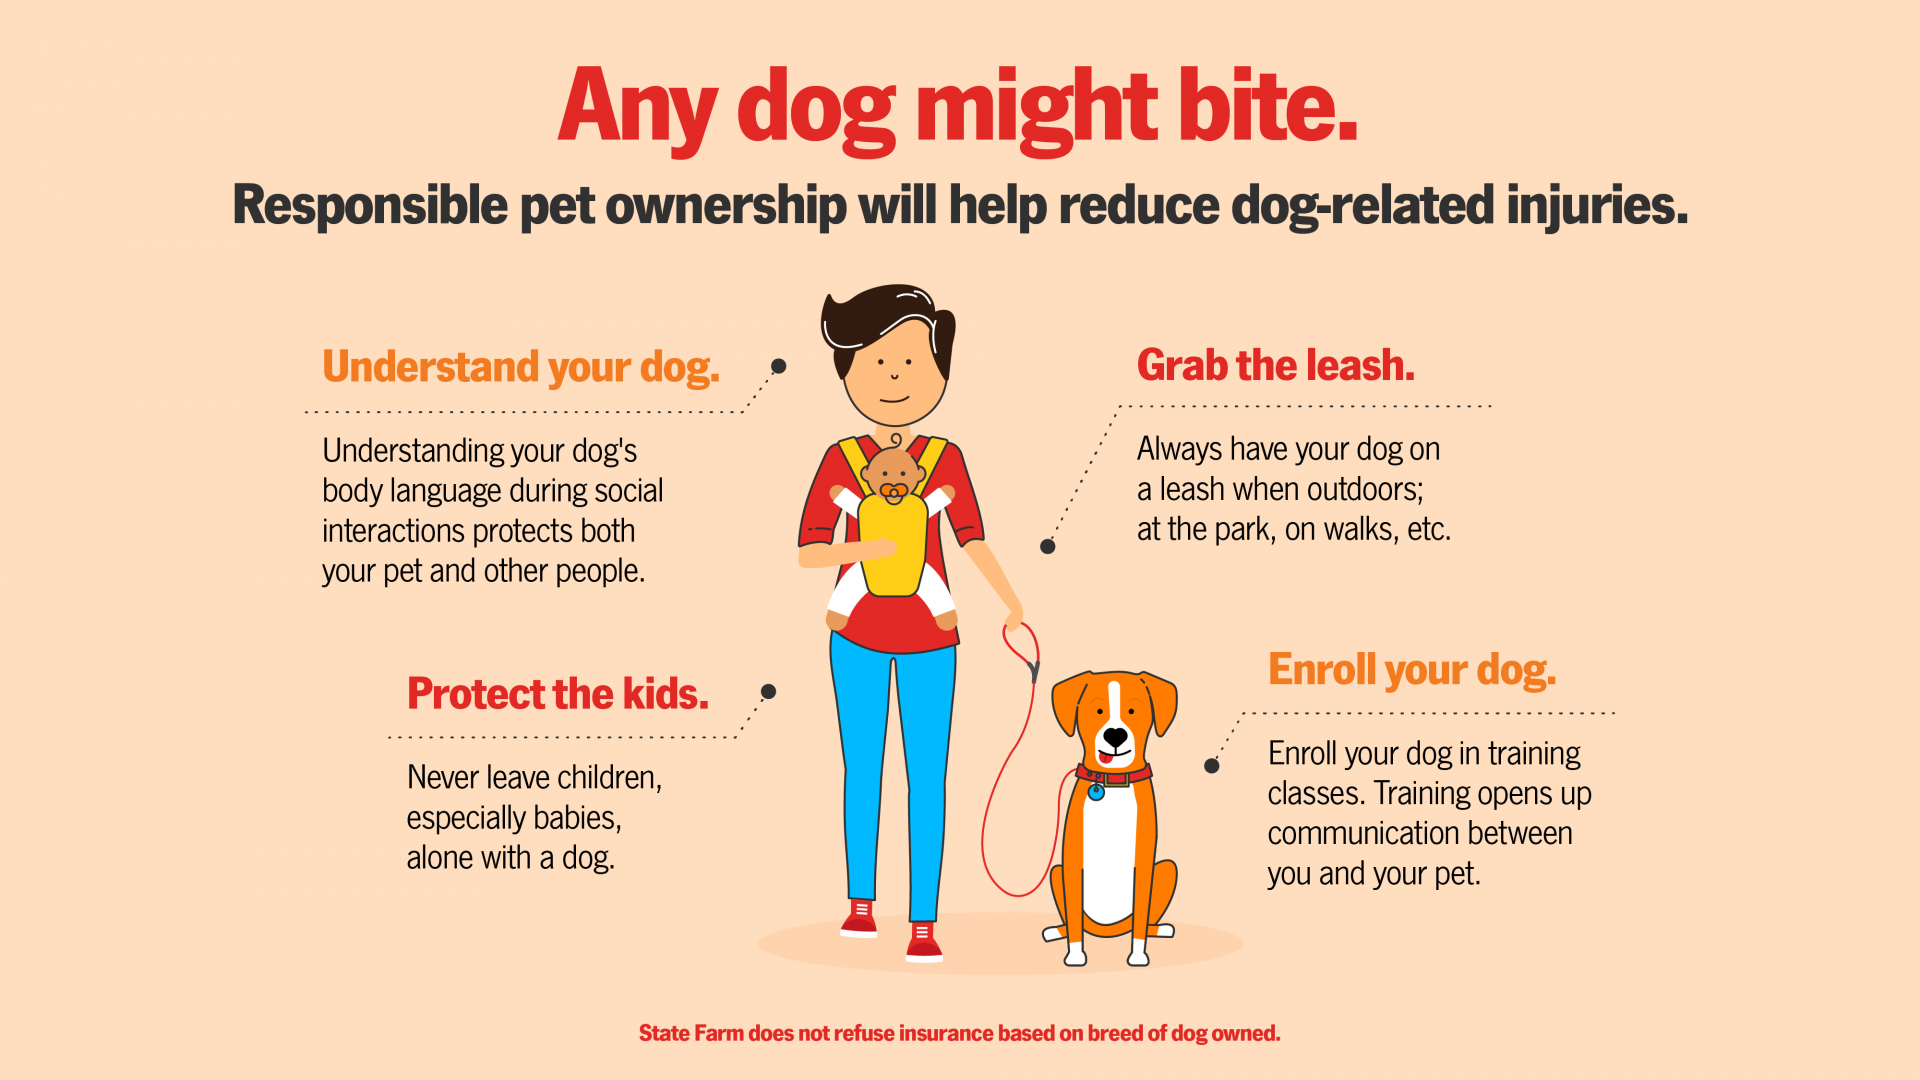 Any Dog Can Bite infographic